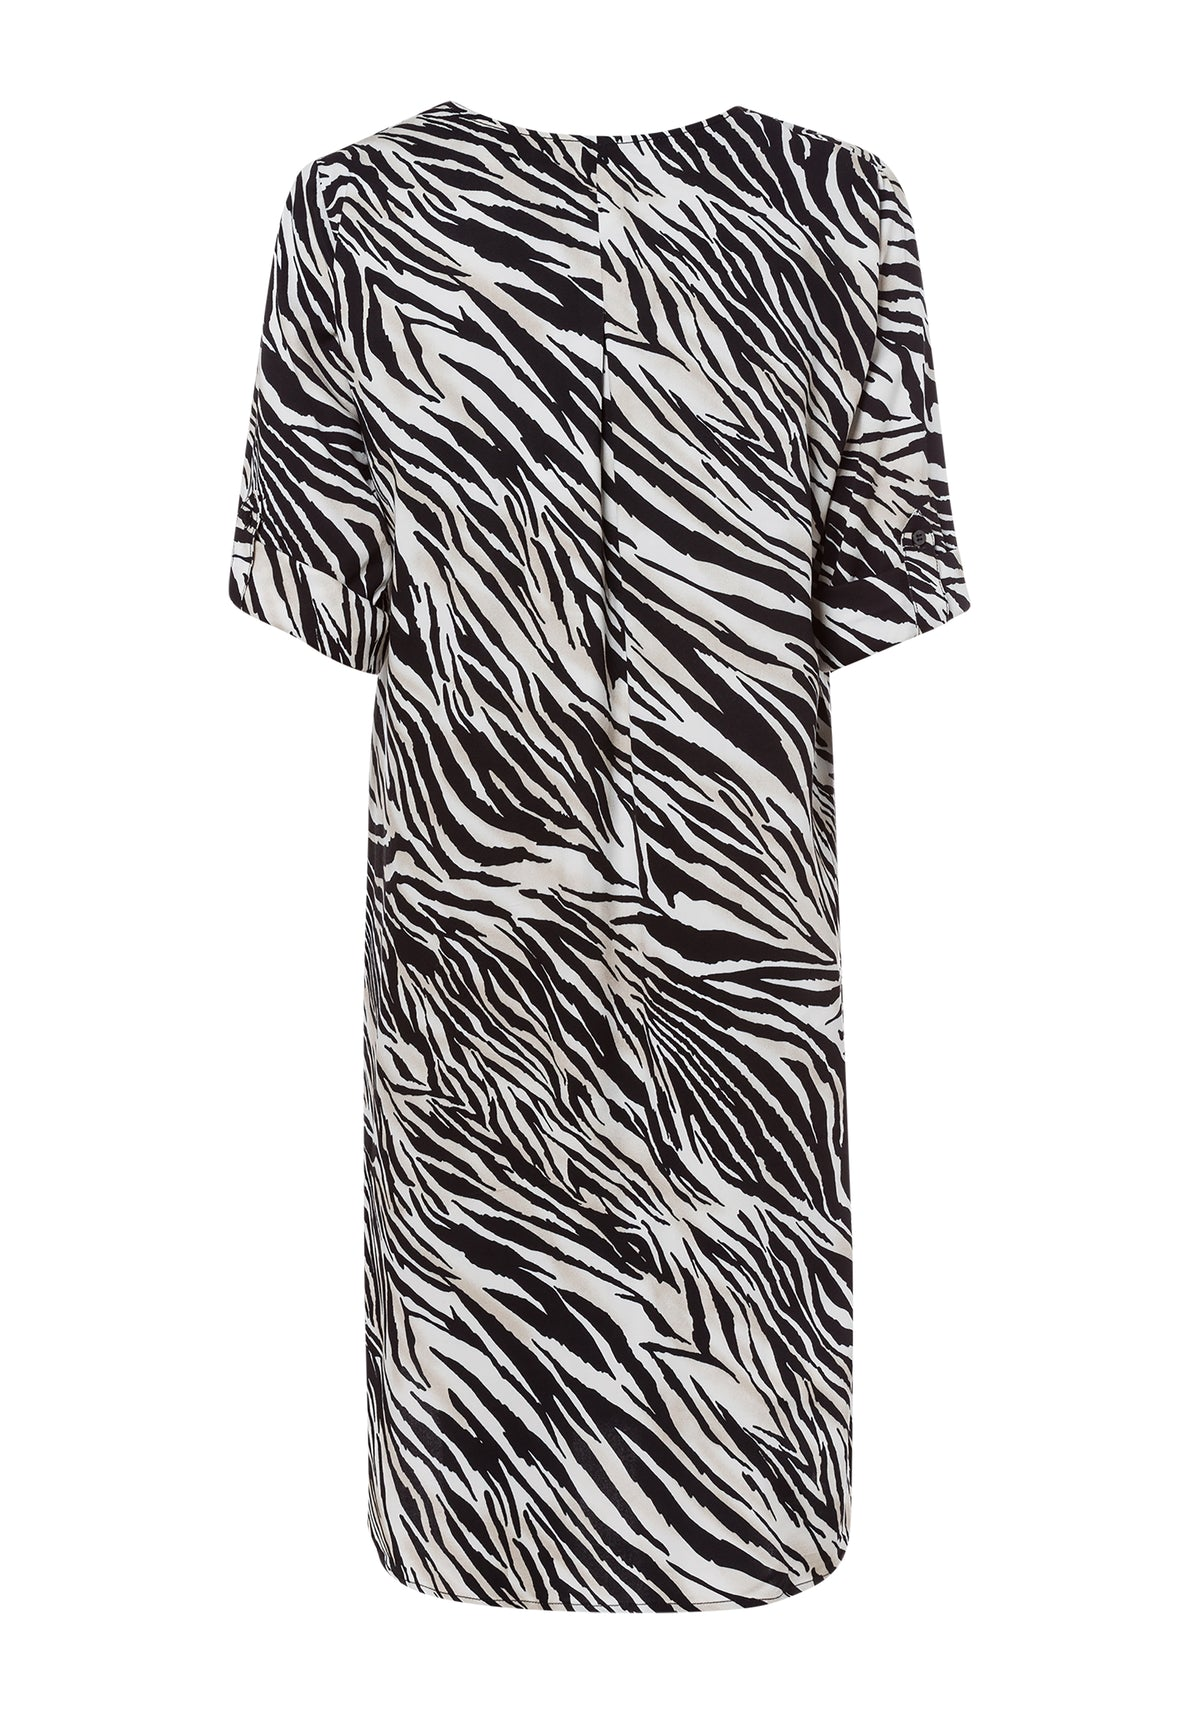 Zebra Print Short Sleeve Tunic Dress